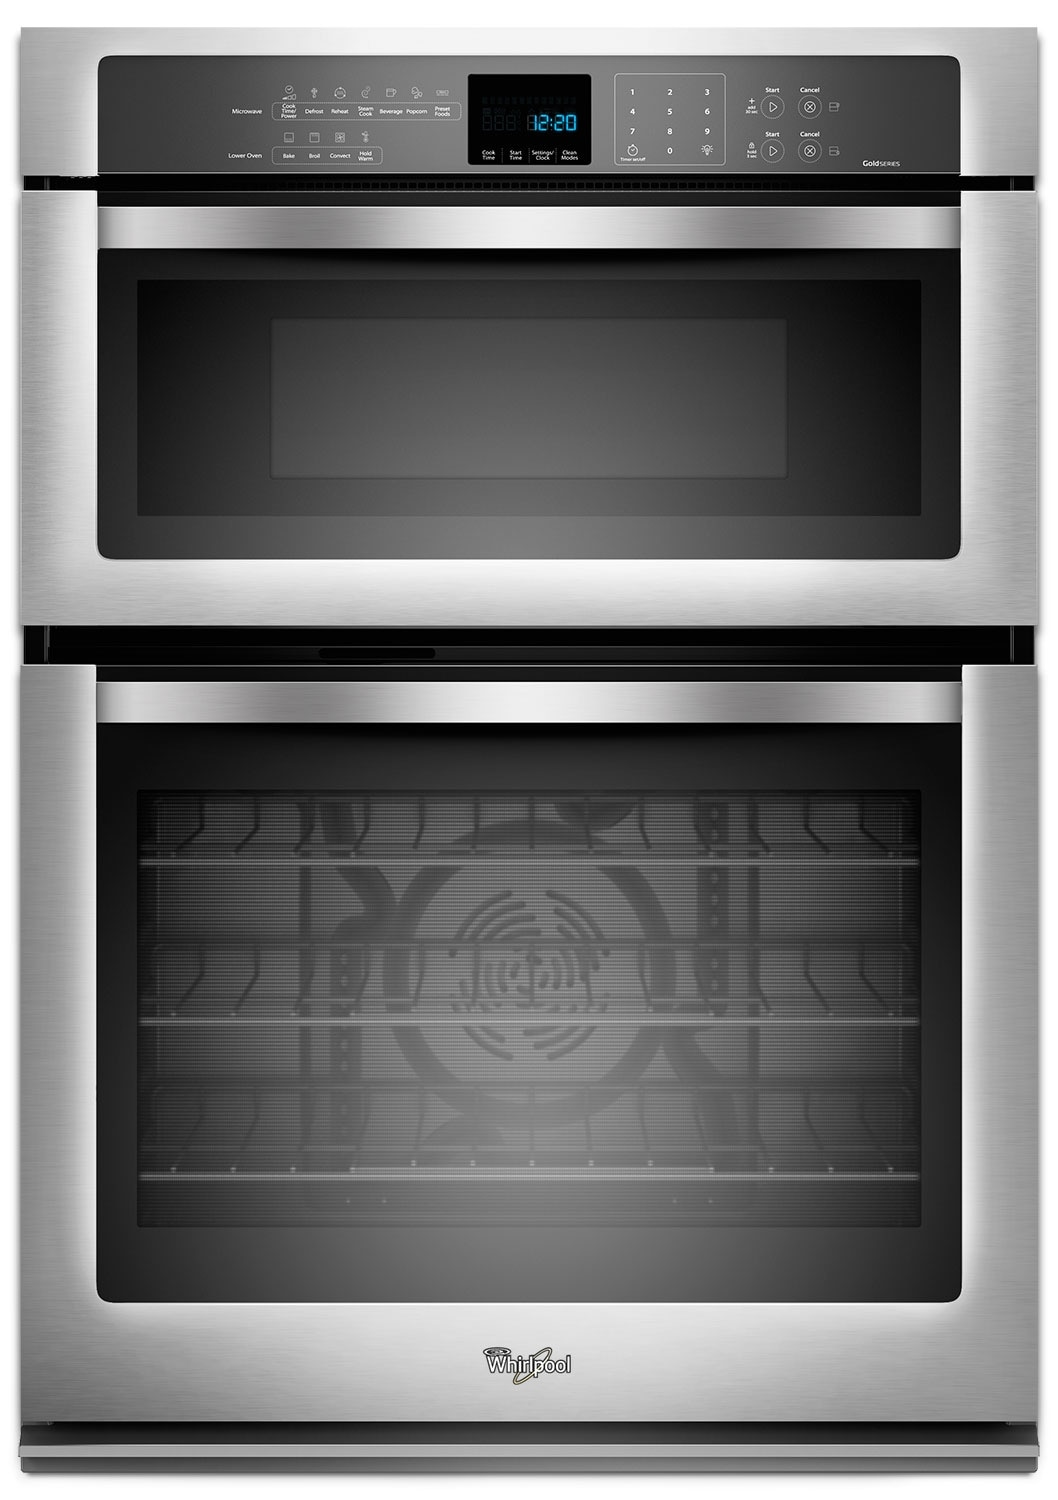 Whirlpool Gold 5.0 Cu. Ft. Combination Wall Oven – WOC95EC0AS